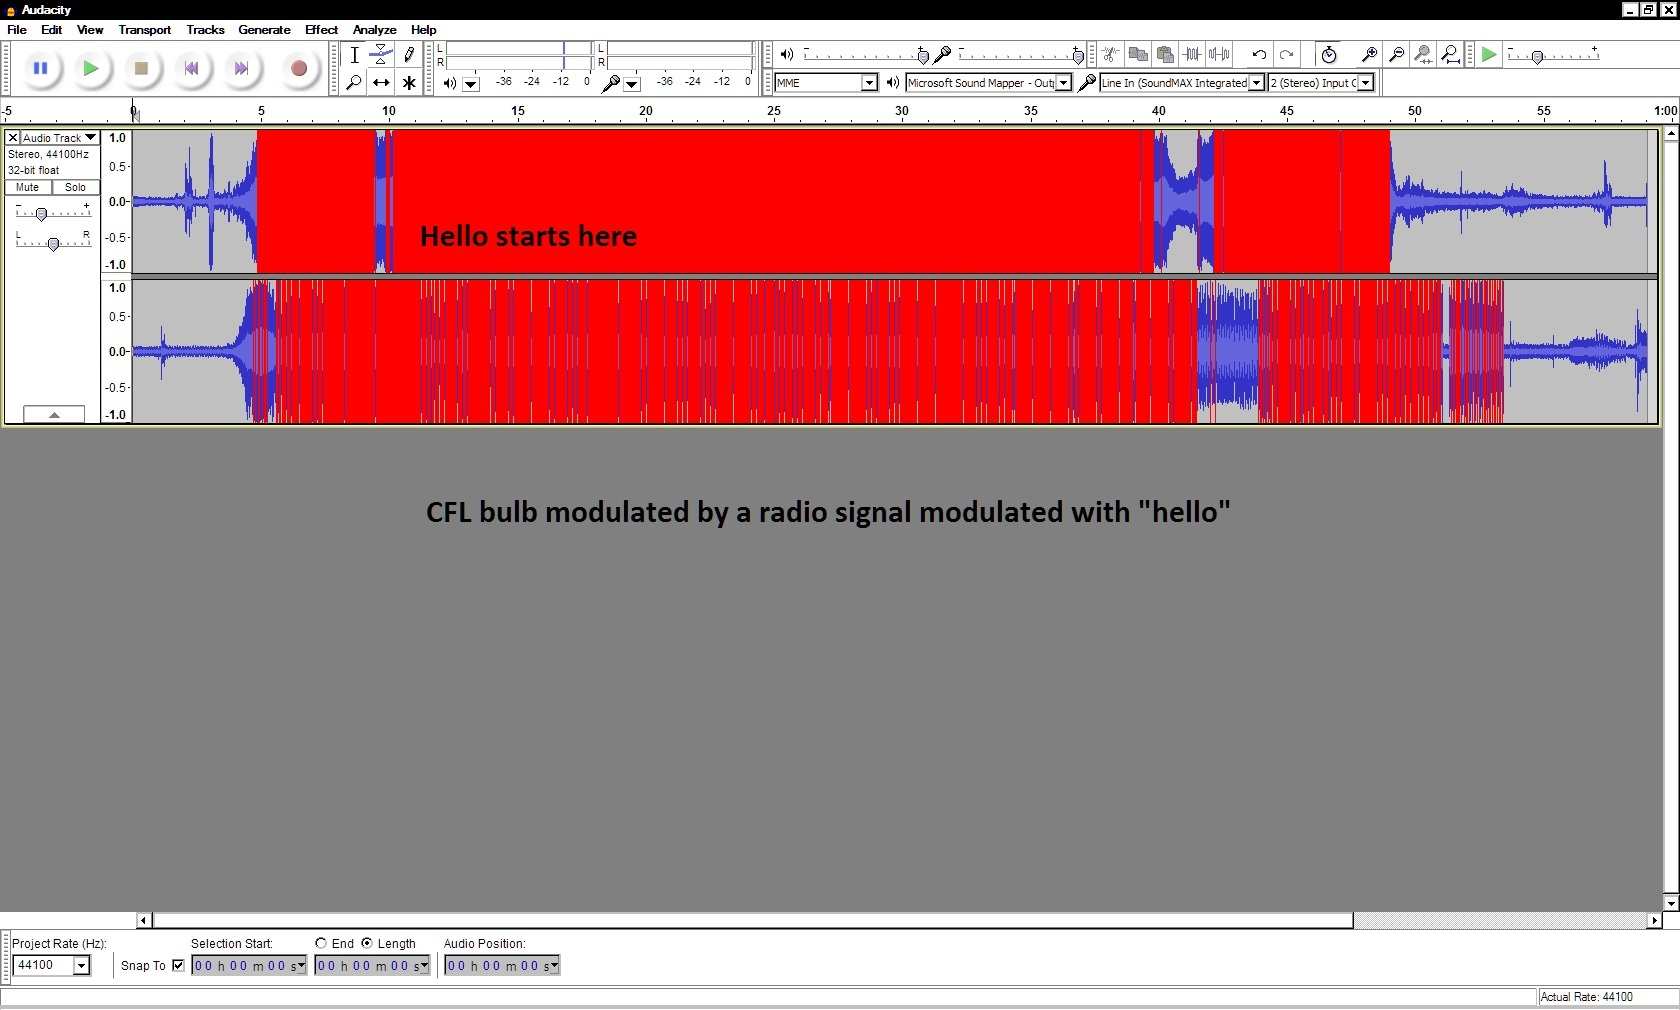 recording cfl bulb modulated by radio signal embedded with subliminal hello